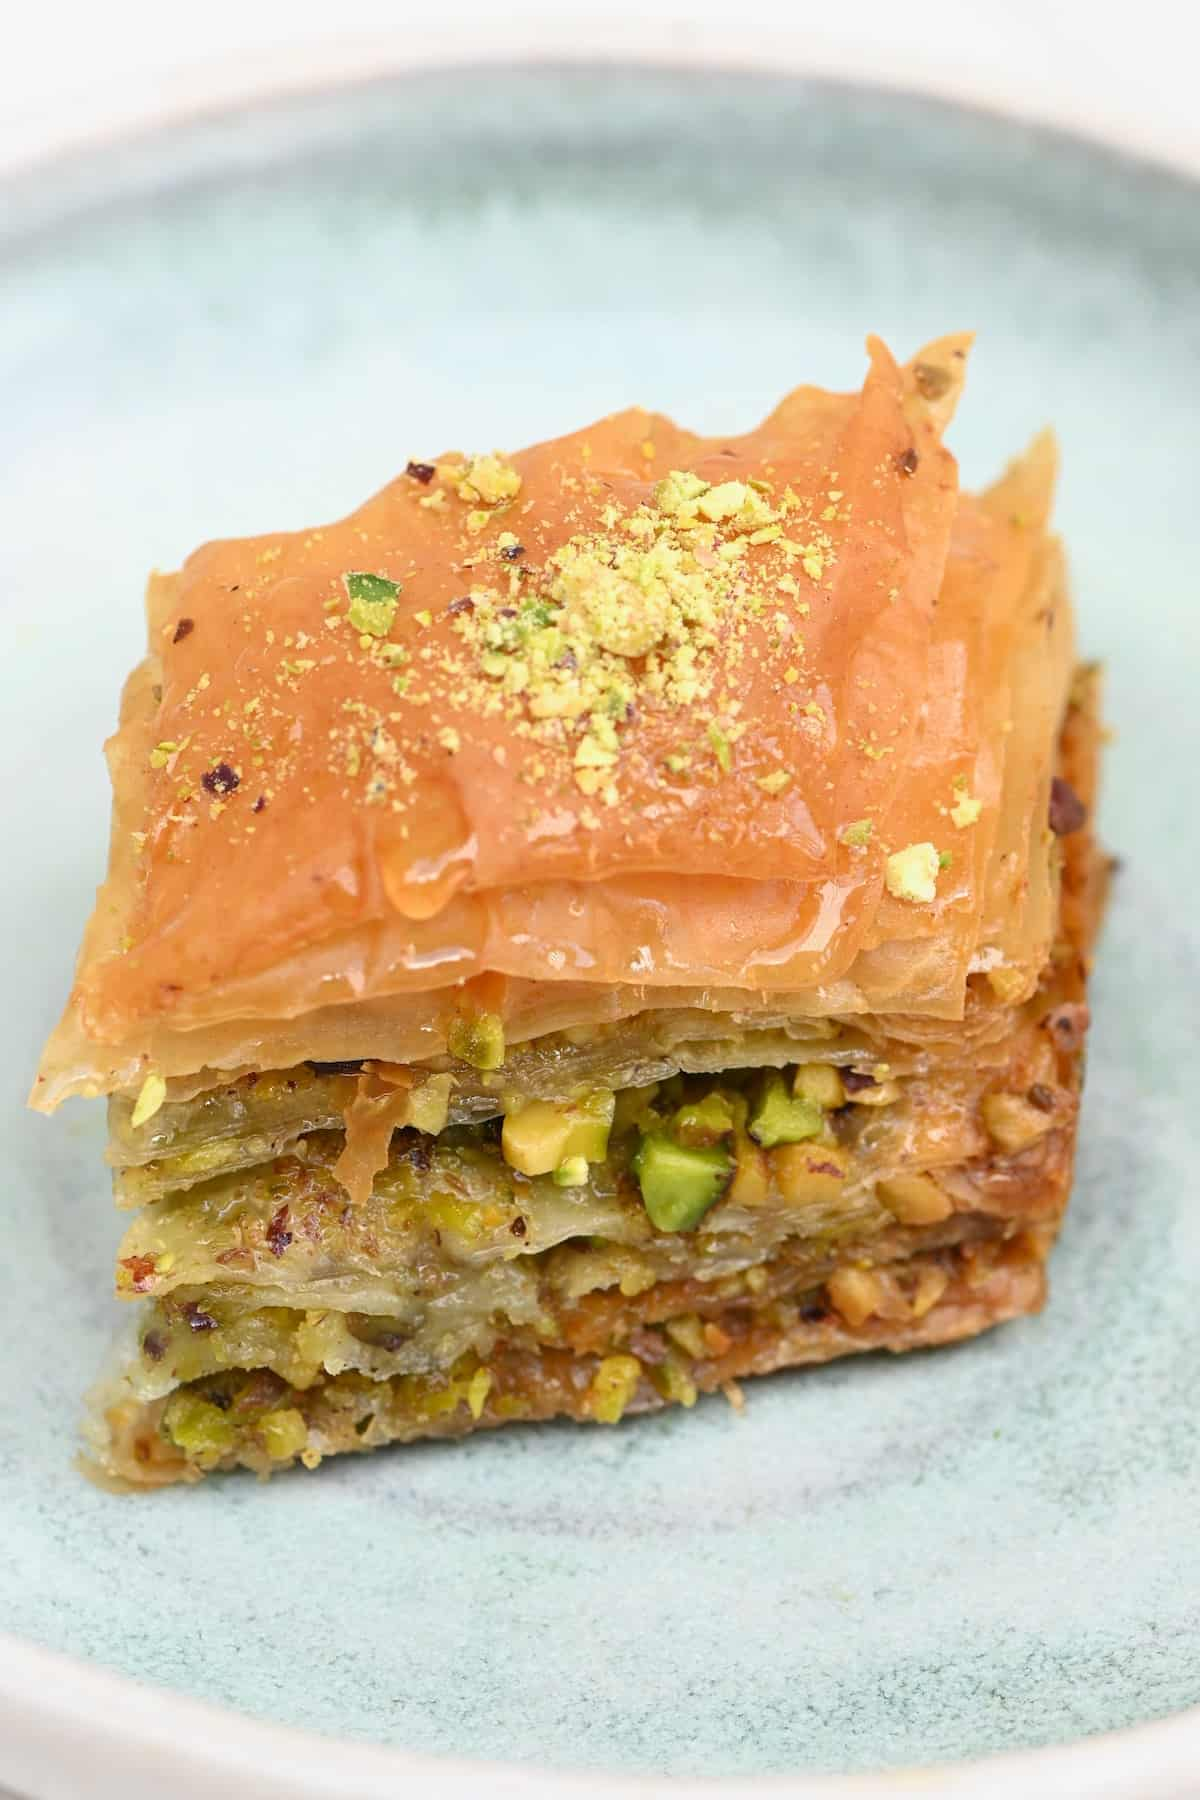 A slice of baklava in a plate